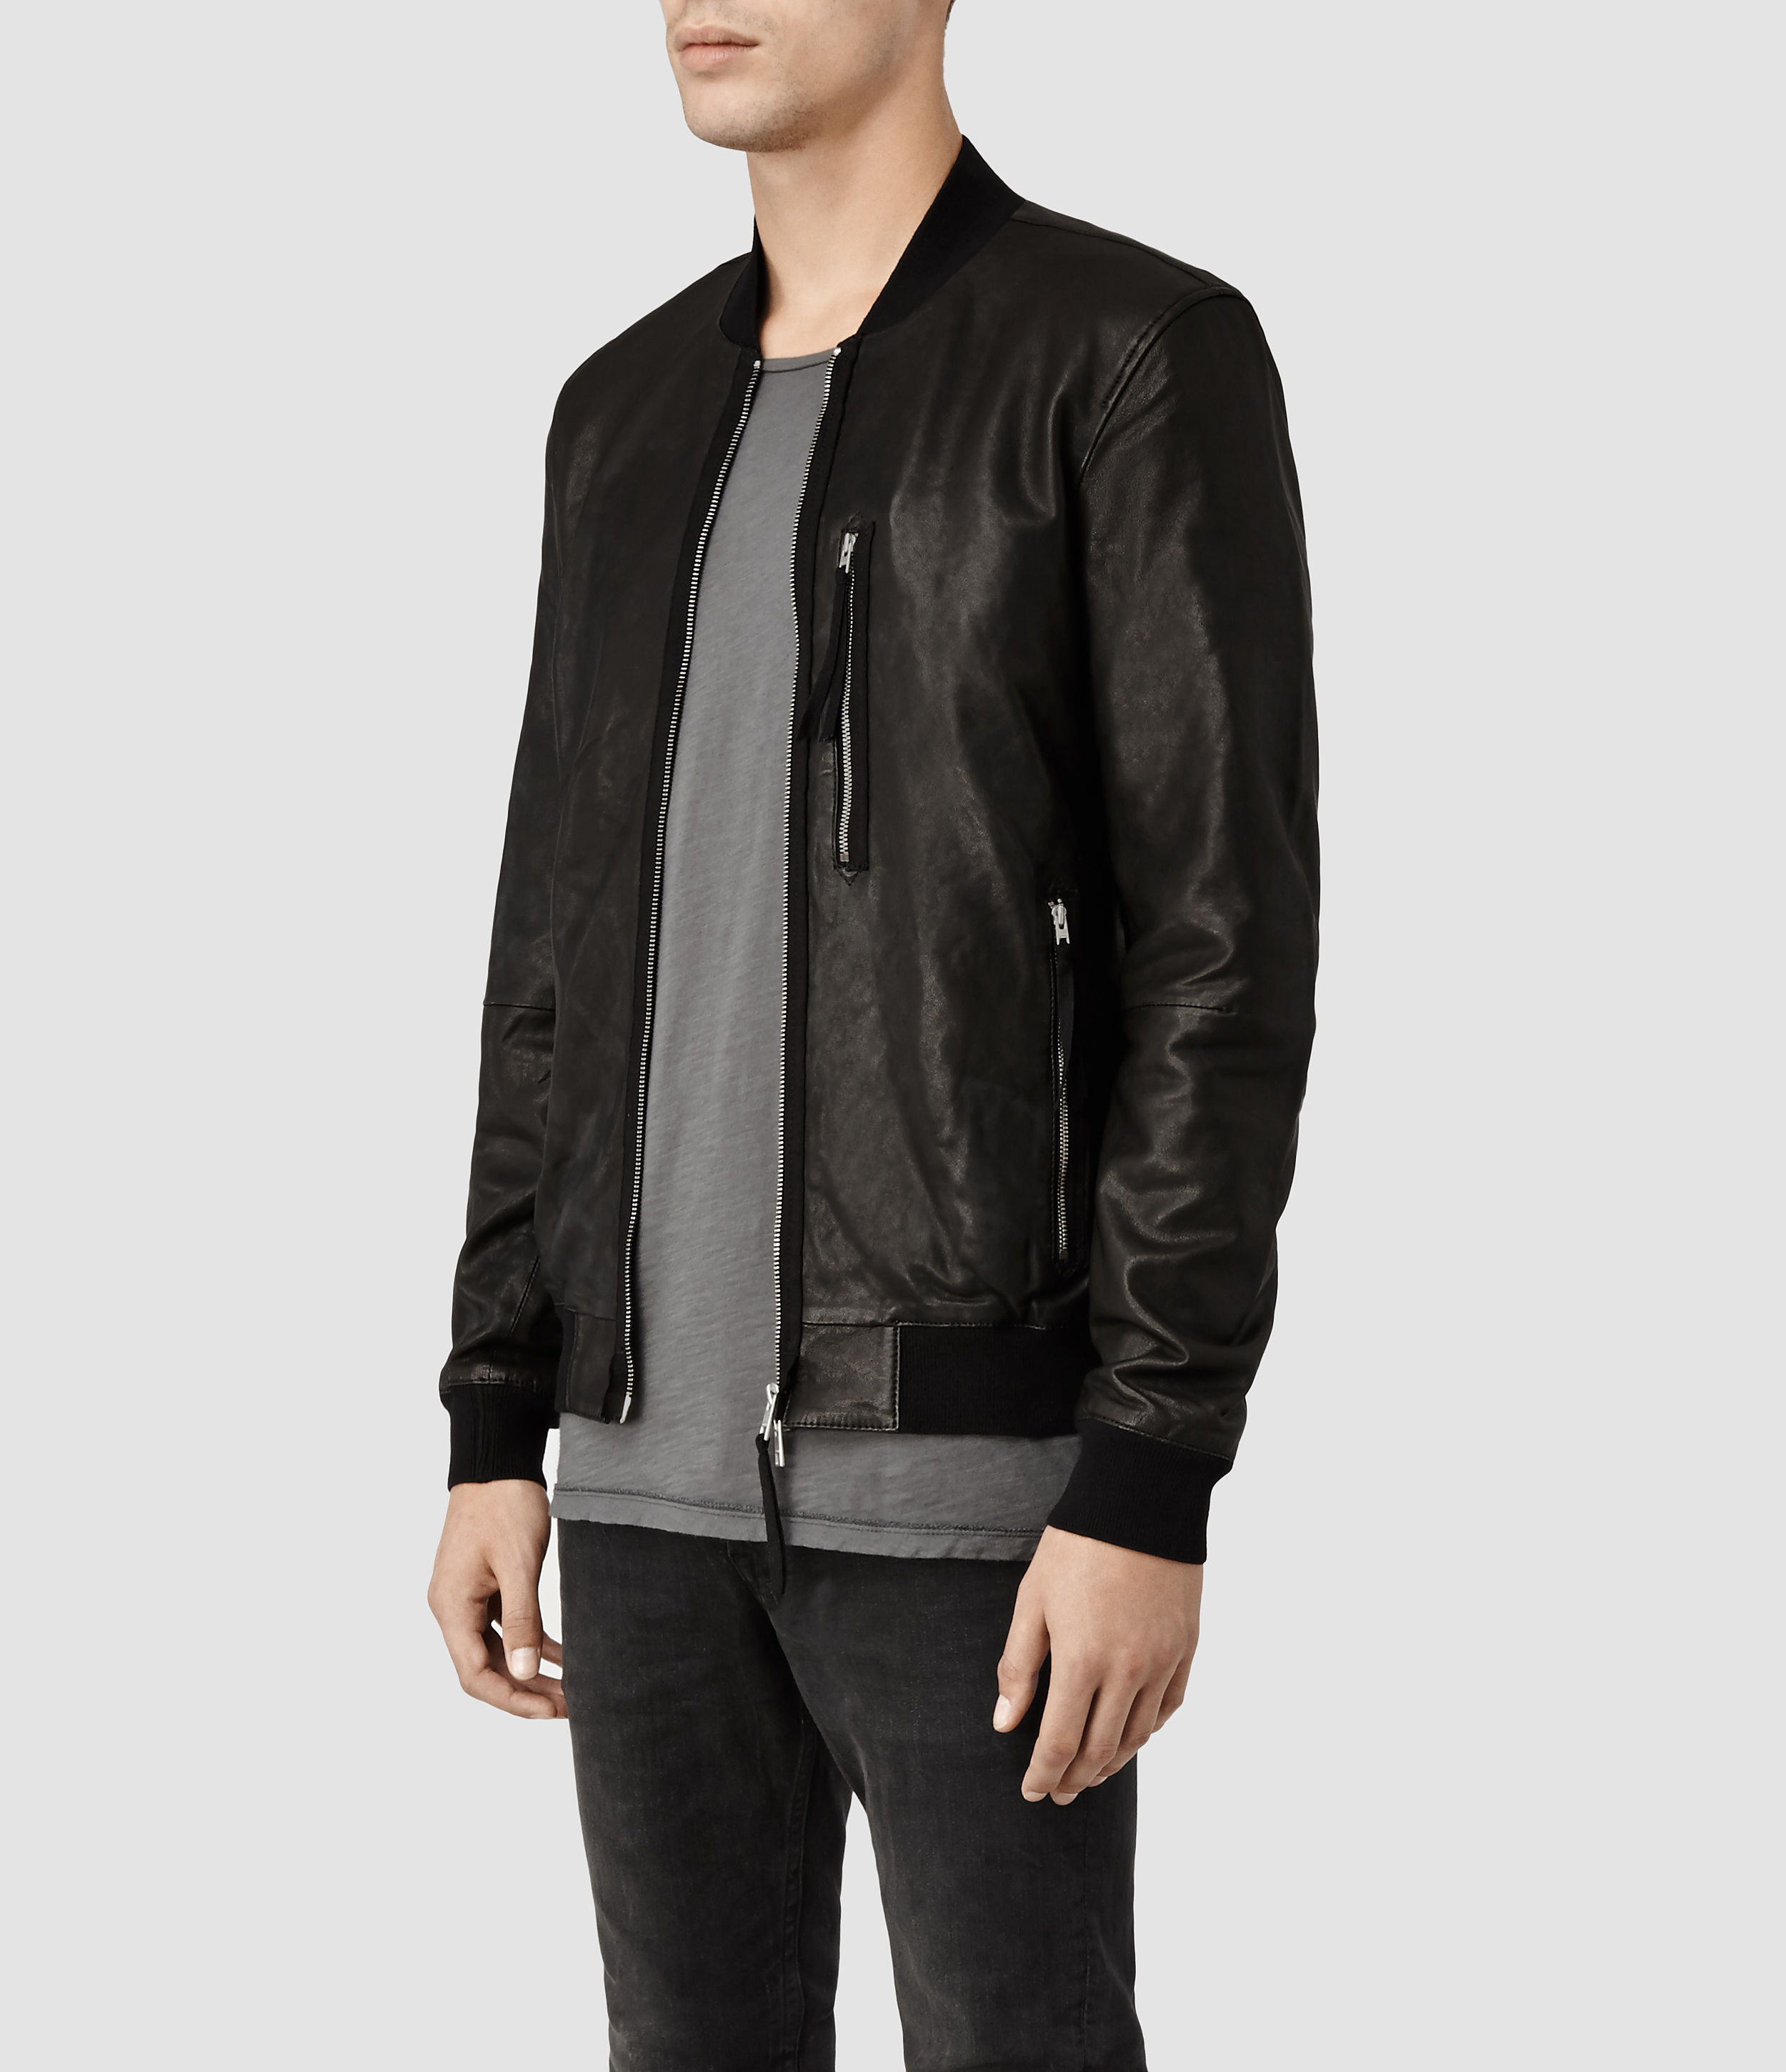 Allsaints Blenham Leather Bomber Jacket in Black for Men | Lyst